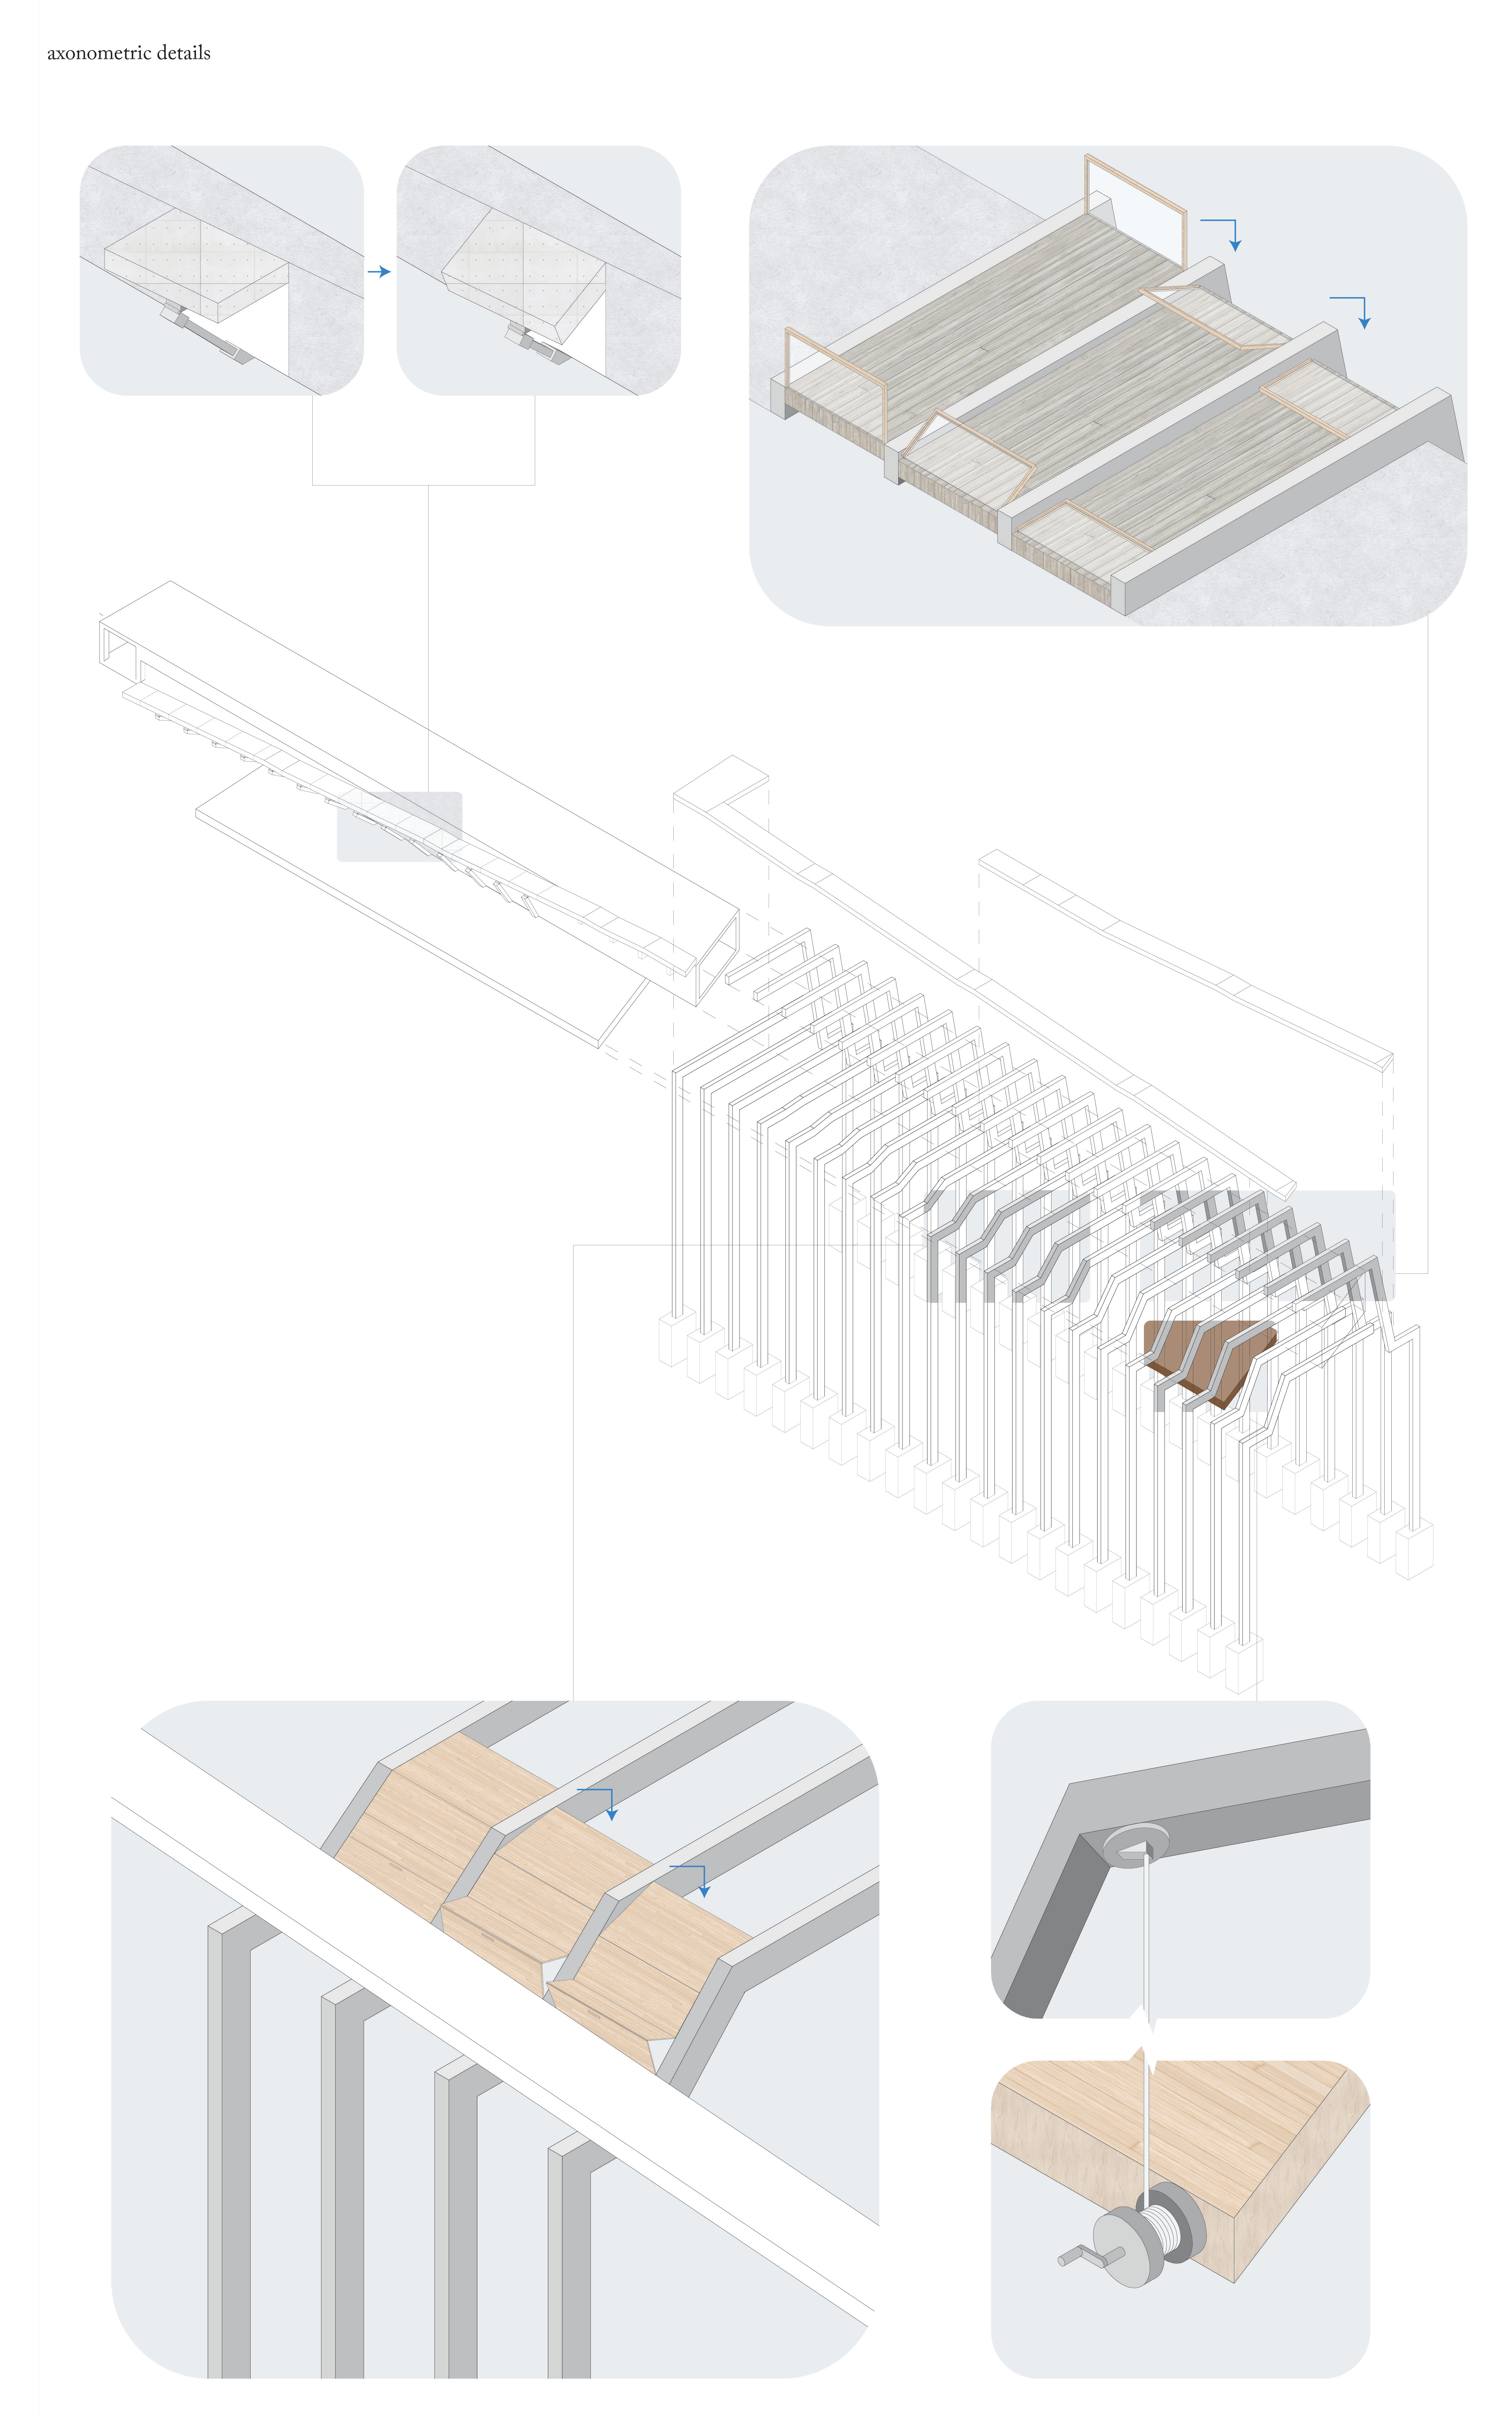 axonometric detail diagram